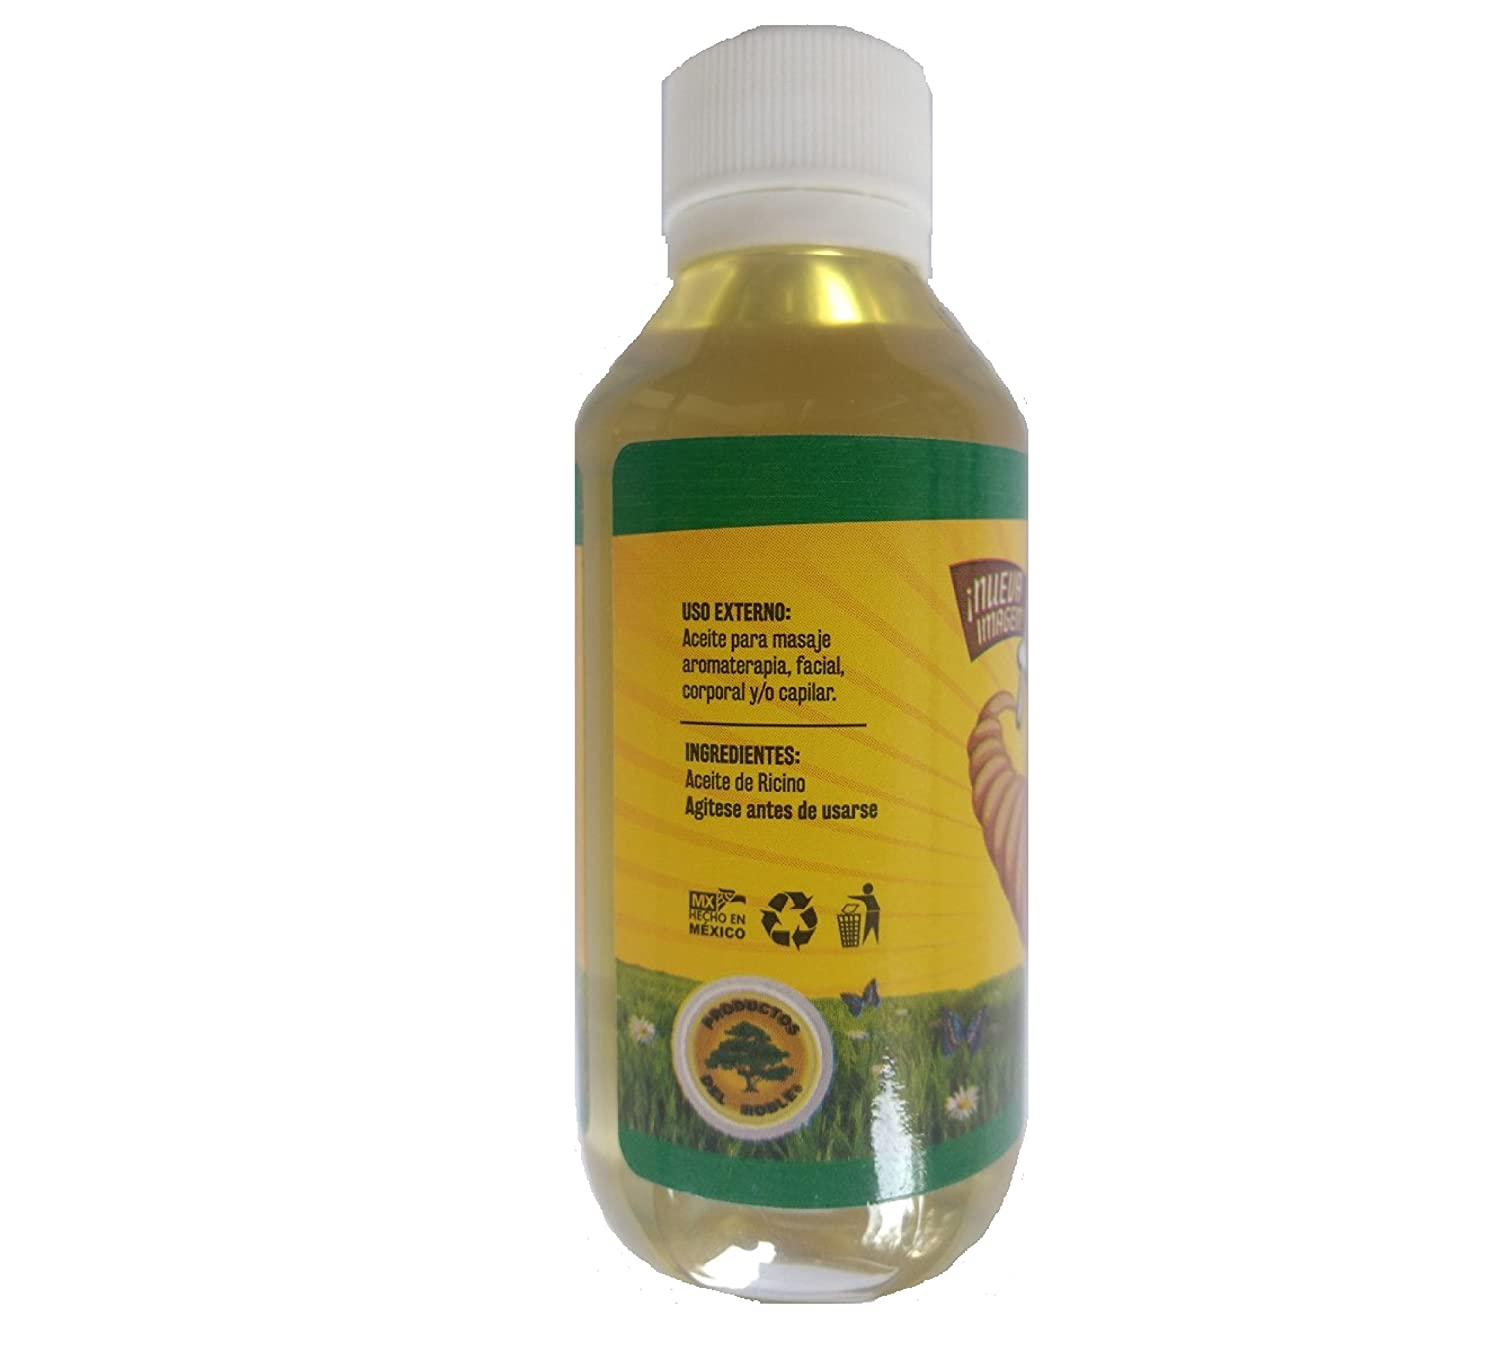 Amazon.com : Aceite de Castor, Castor Oil, Aceite de Ricino, Ricino Oil, 120ml. Oil for Massage, Aromatherapy, Facial, Body and / or Hair. : Beauty